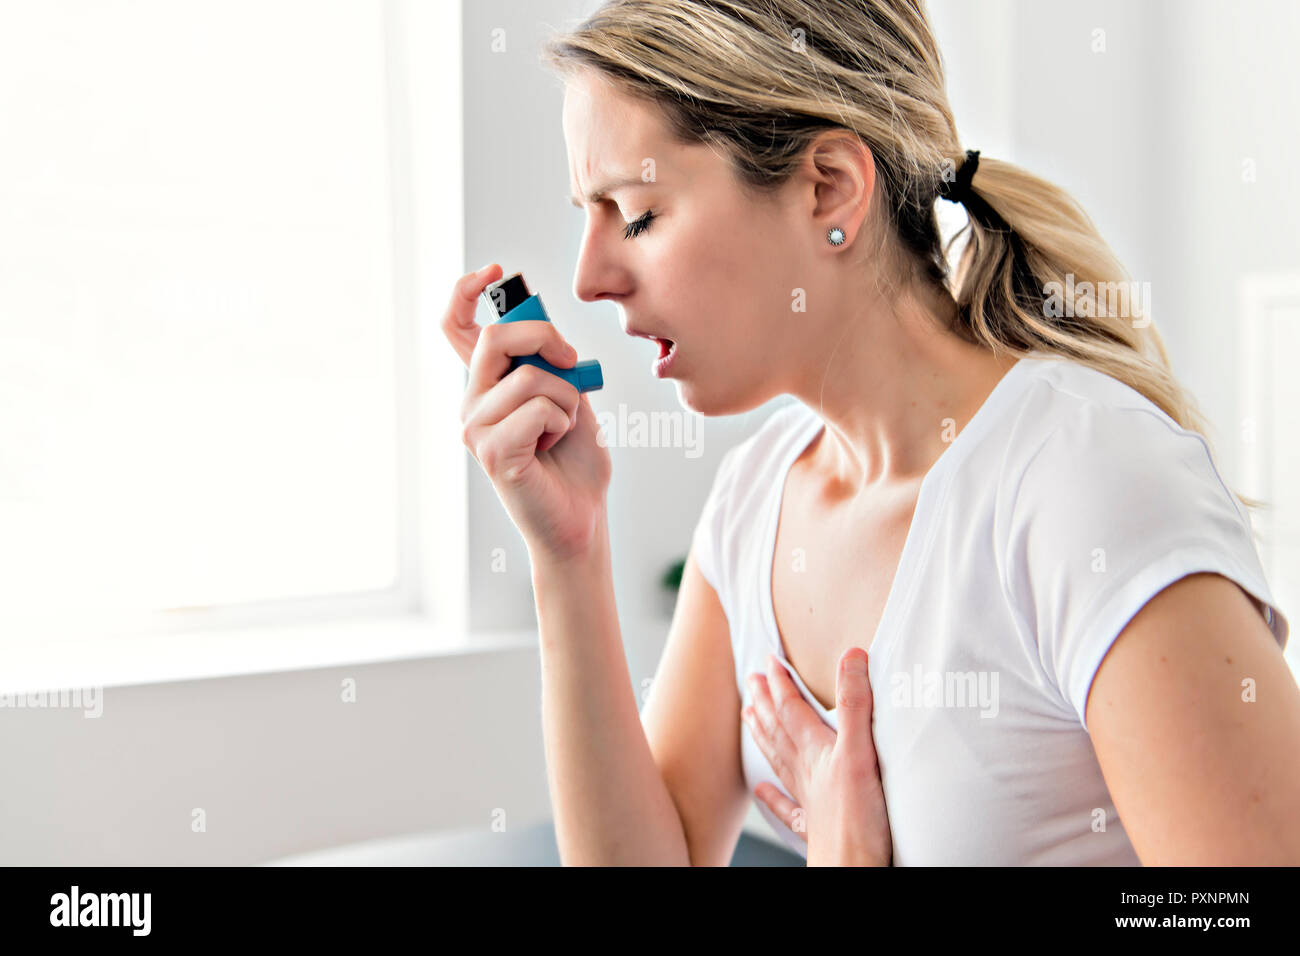 An Asthmatic using her inhaler because of breath difficulties - Stock Image